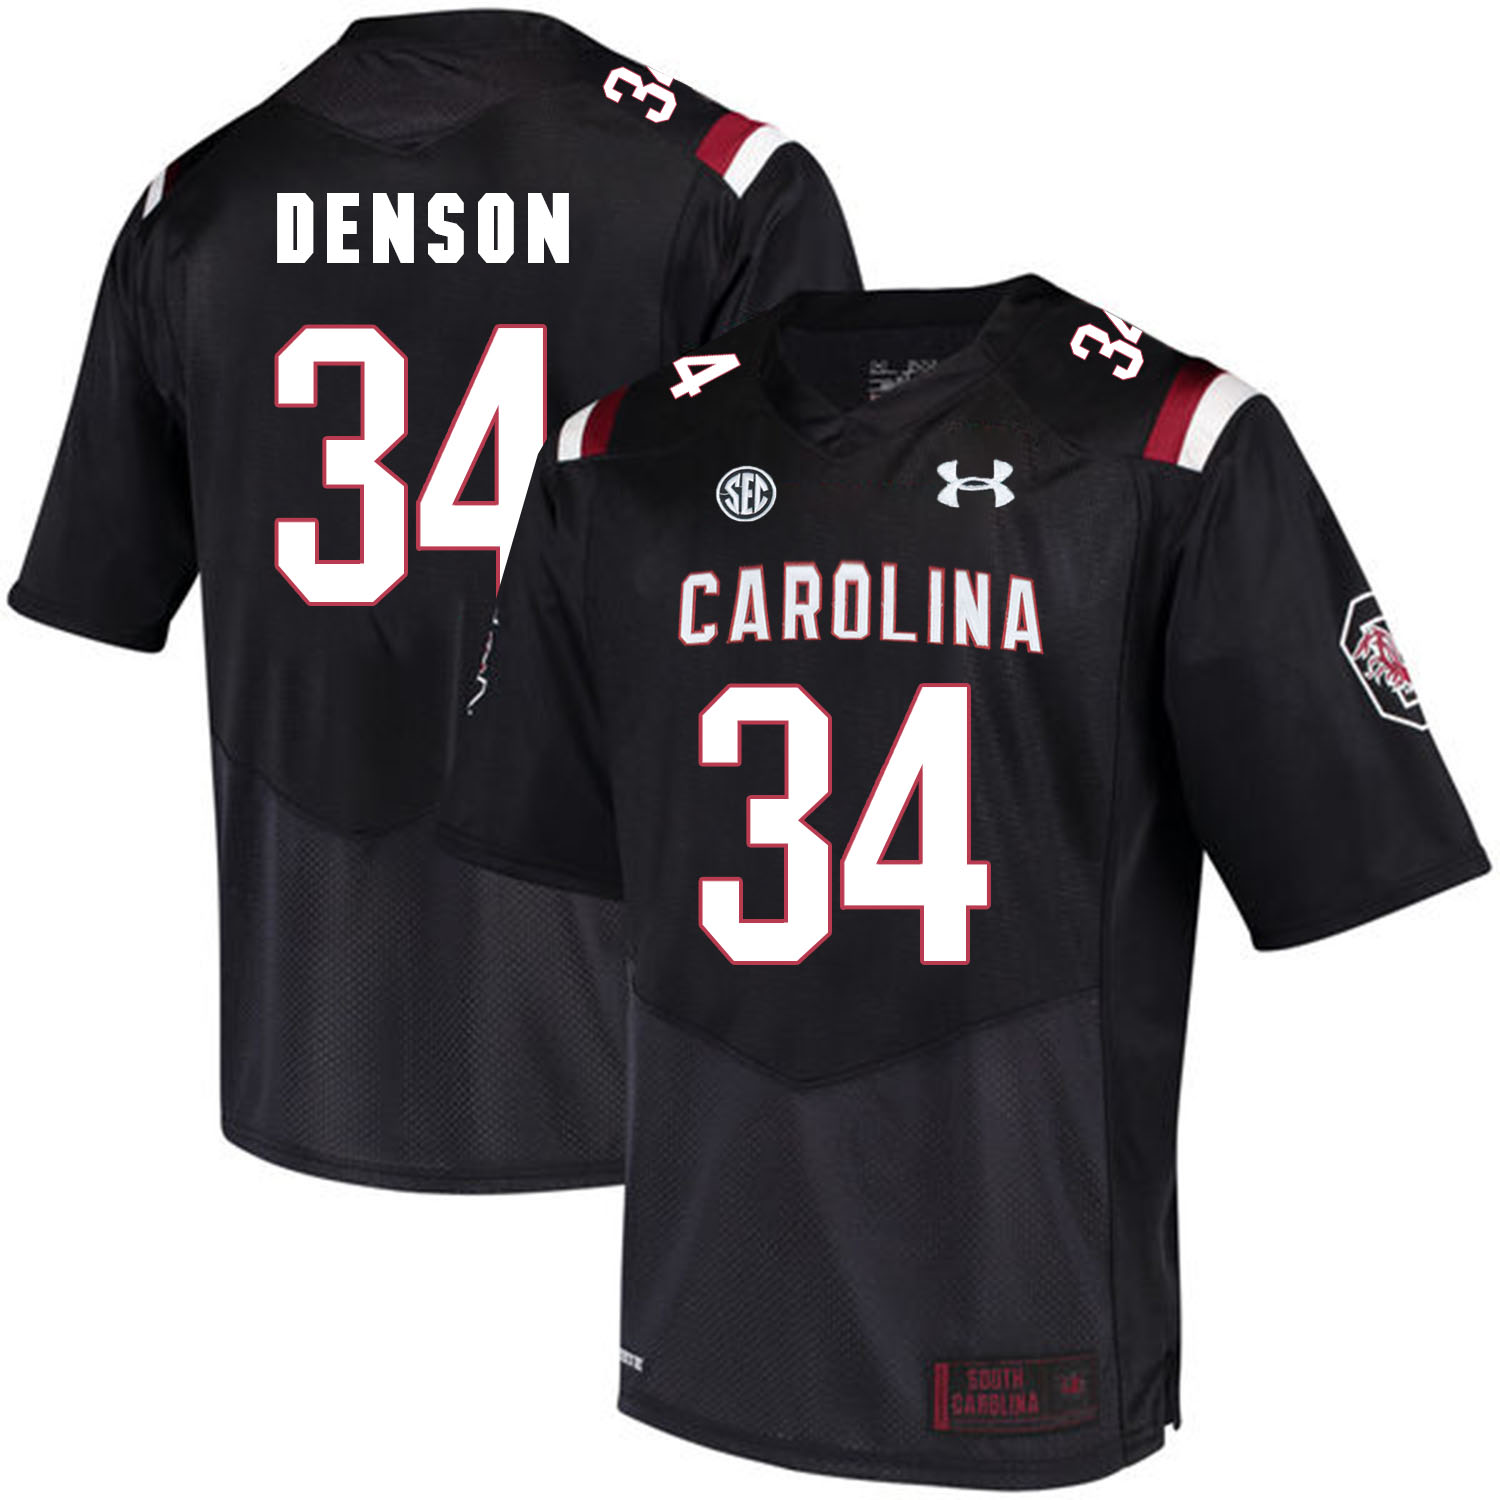 South Carolina Gamecocks 34 Mon Denson Black College Football Jersey